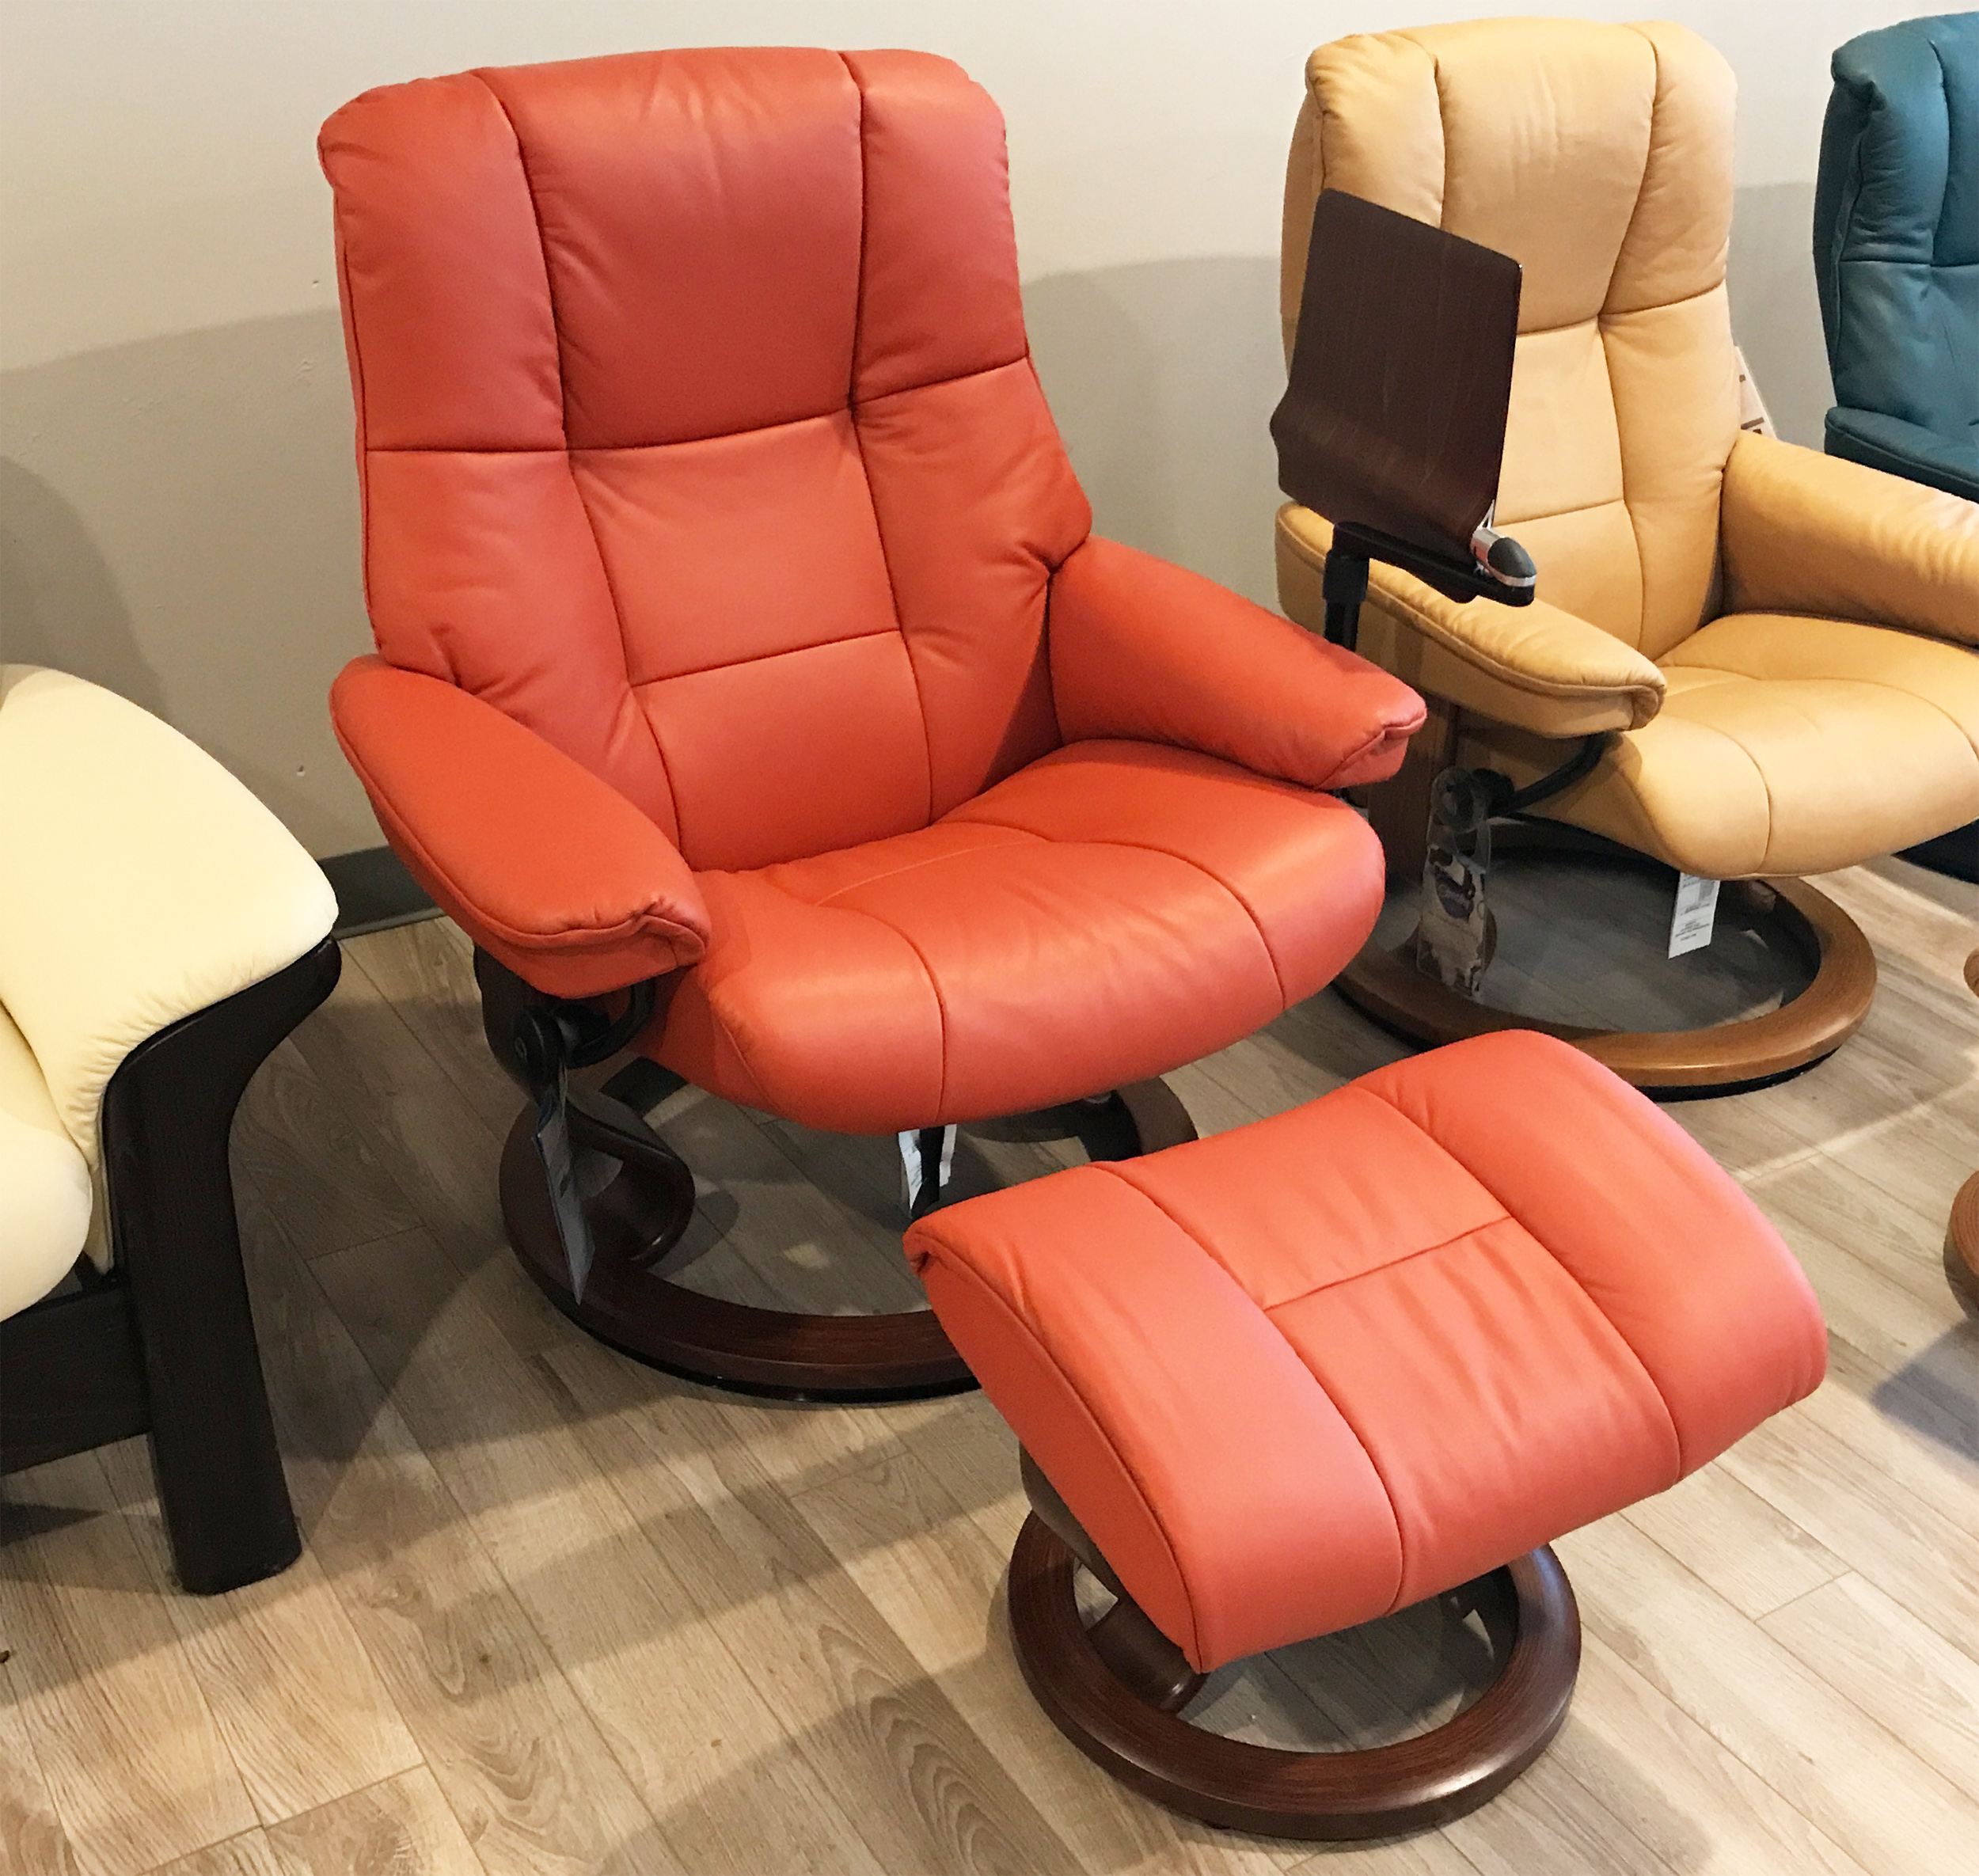 Stressless Mayfair Paloma Henna Leather Recliner Chair And Ottoman By  Ekornes   Stressless Mayfair Paloma Henna Leather Chairs Recliners